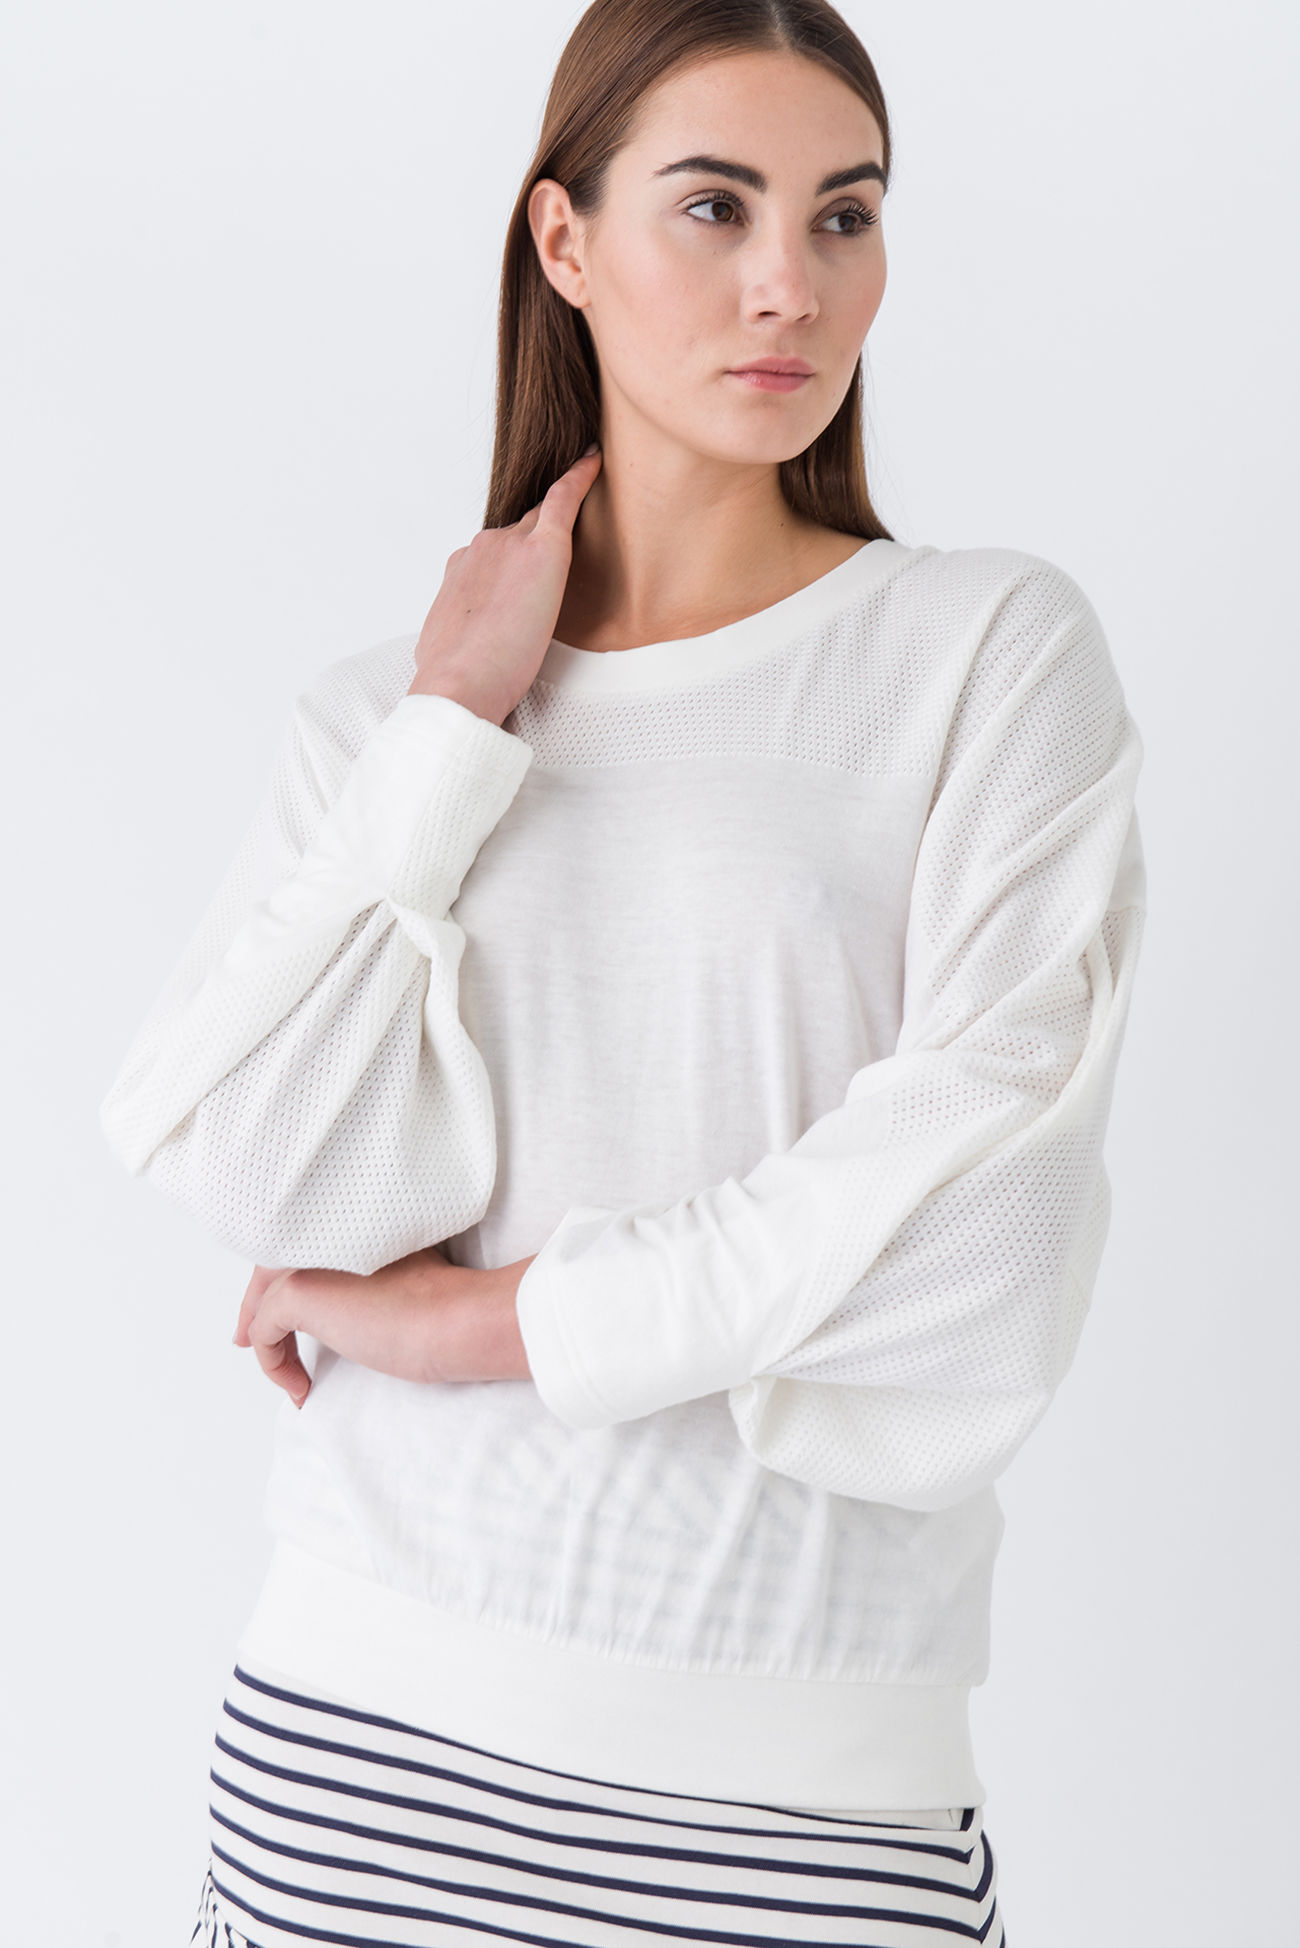 Sweater in a blogger style with delicate hole pattern effect